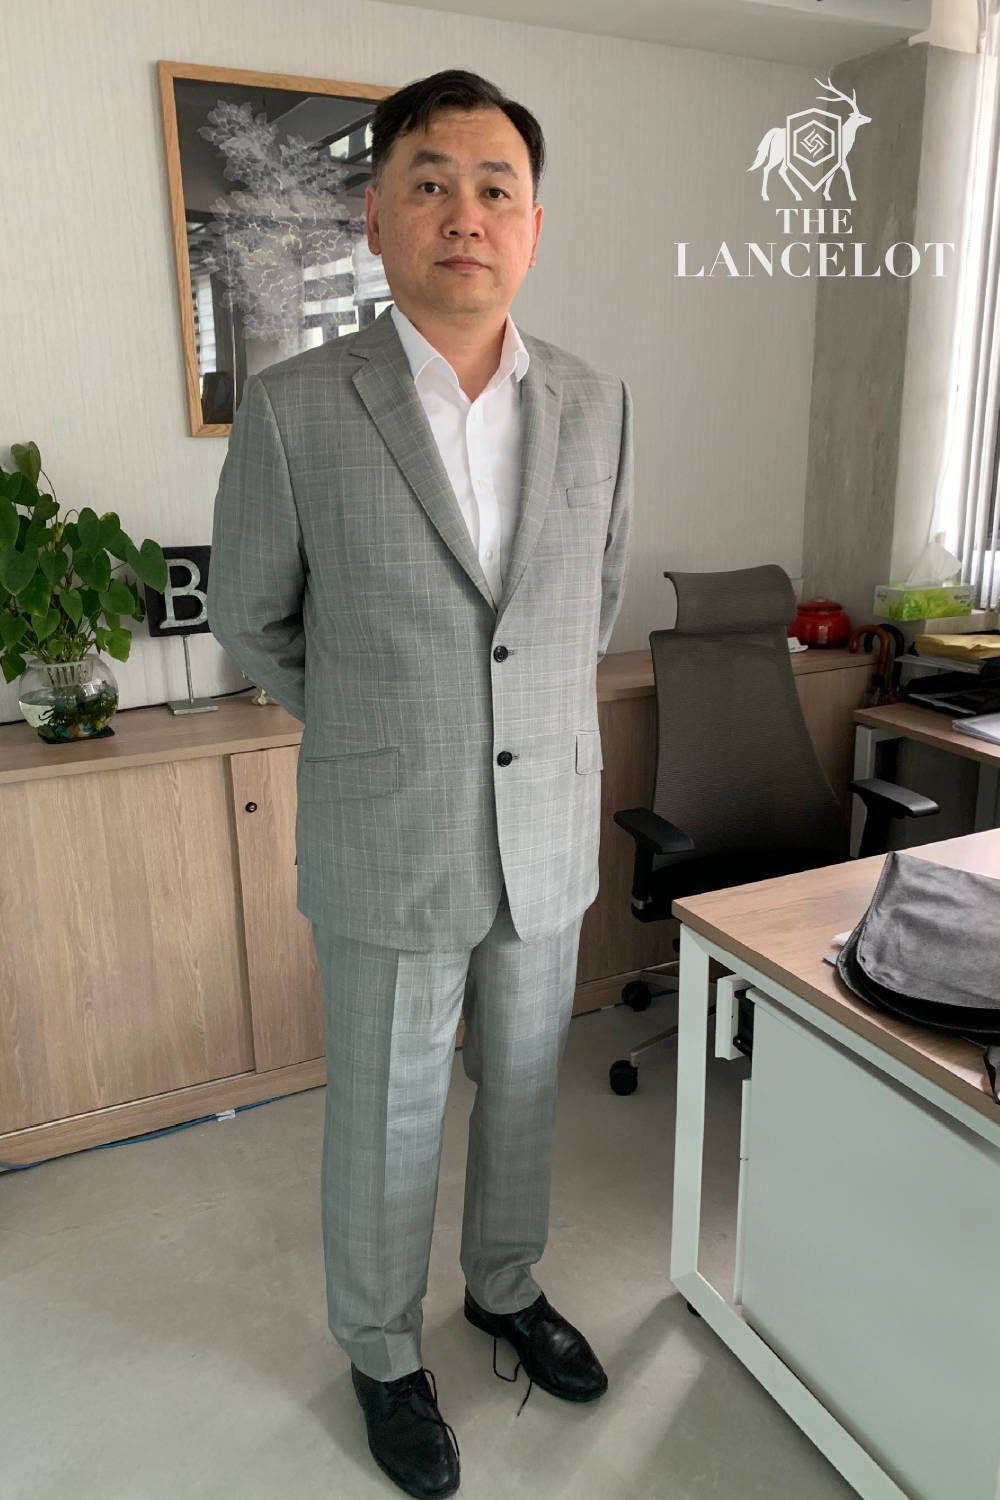 the-lancelot-hong-kong-bespoke-tailor-gallery-portfolio-7